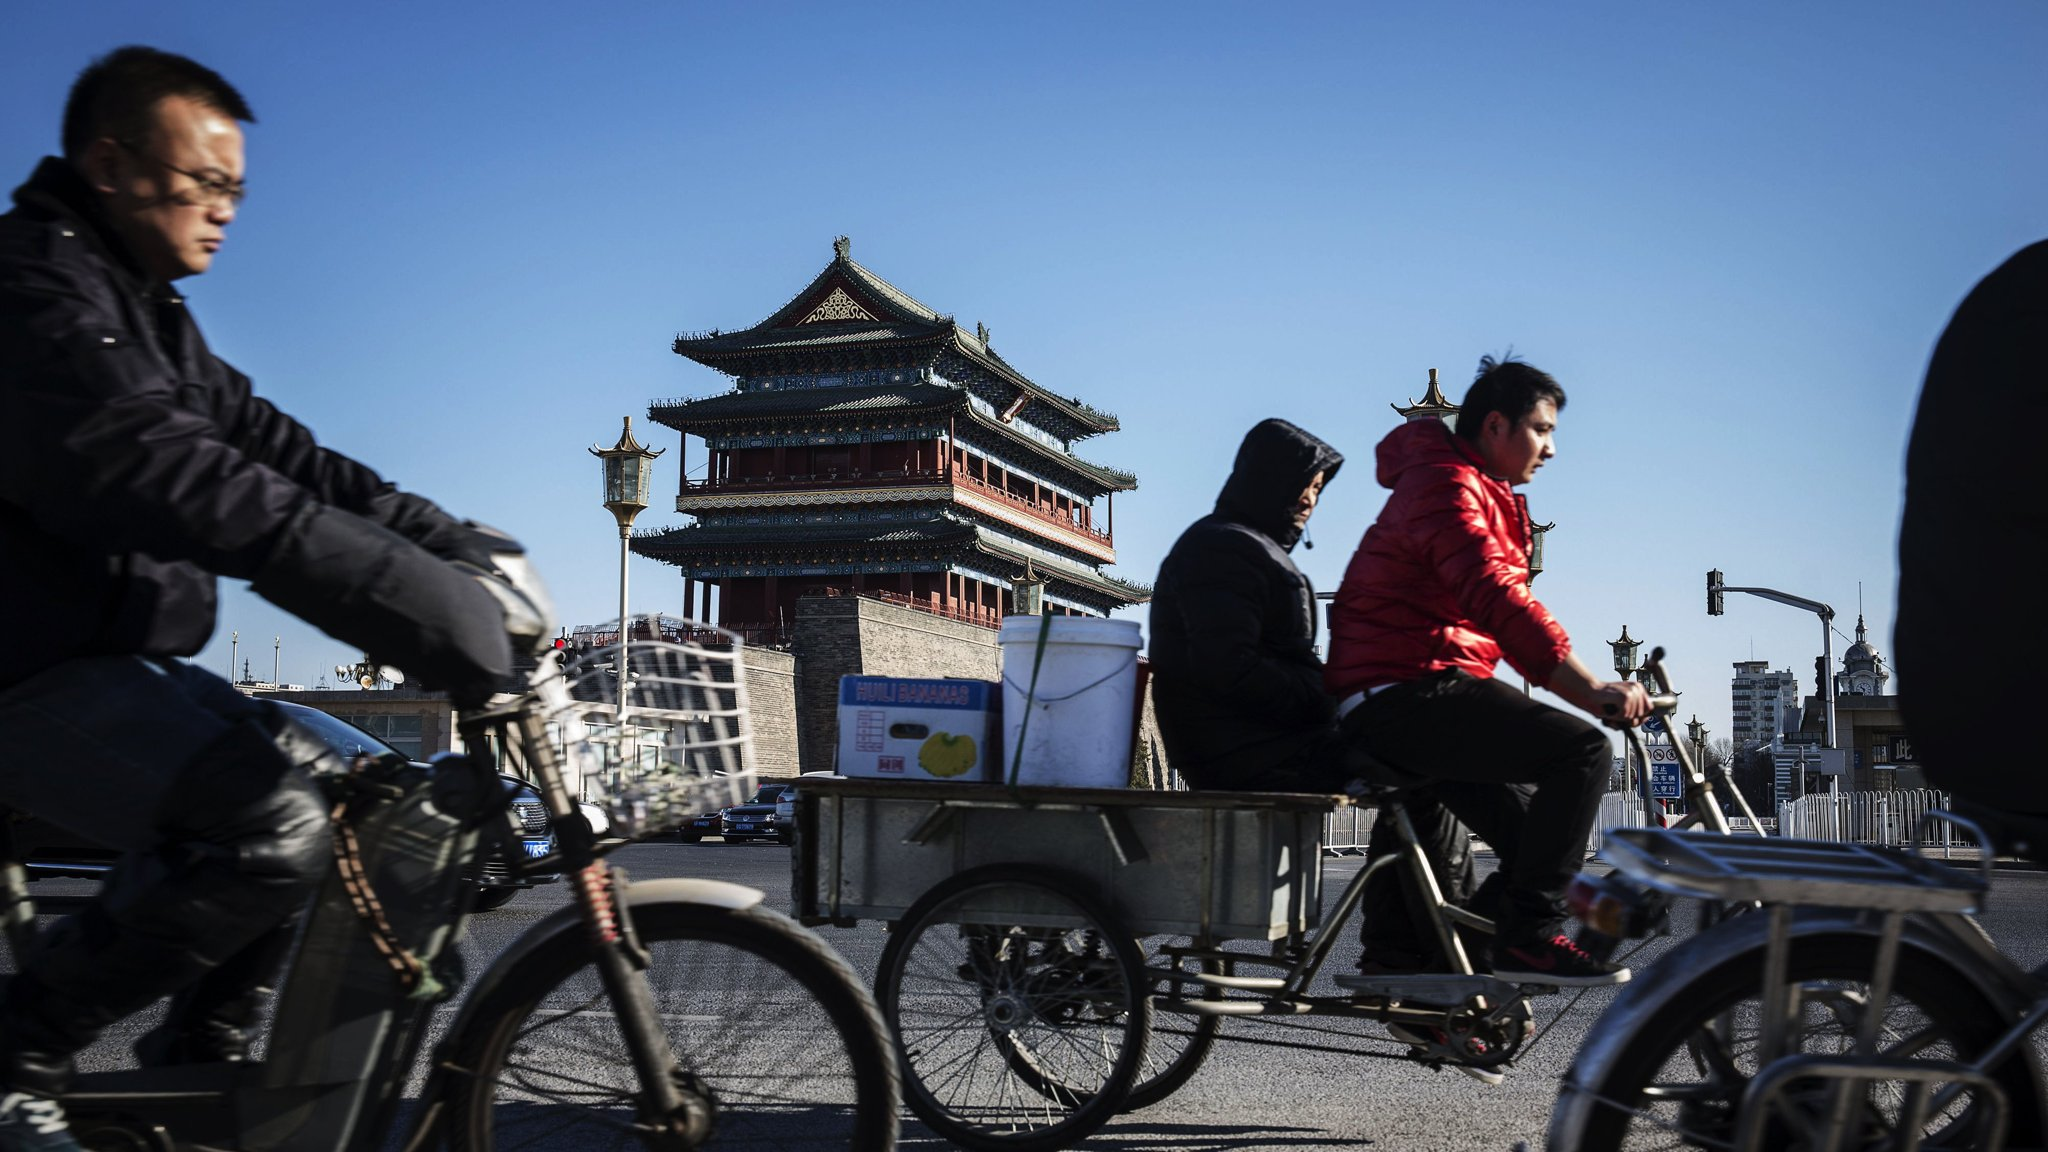 Beijing breathes easy as war on smog clears skies